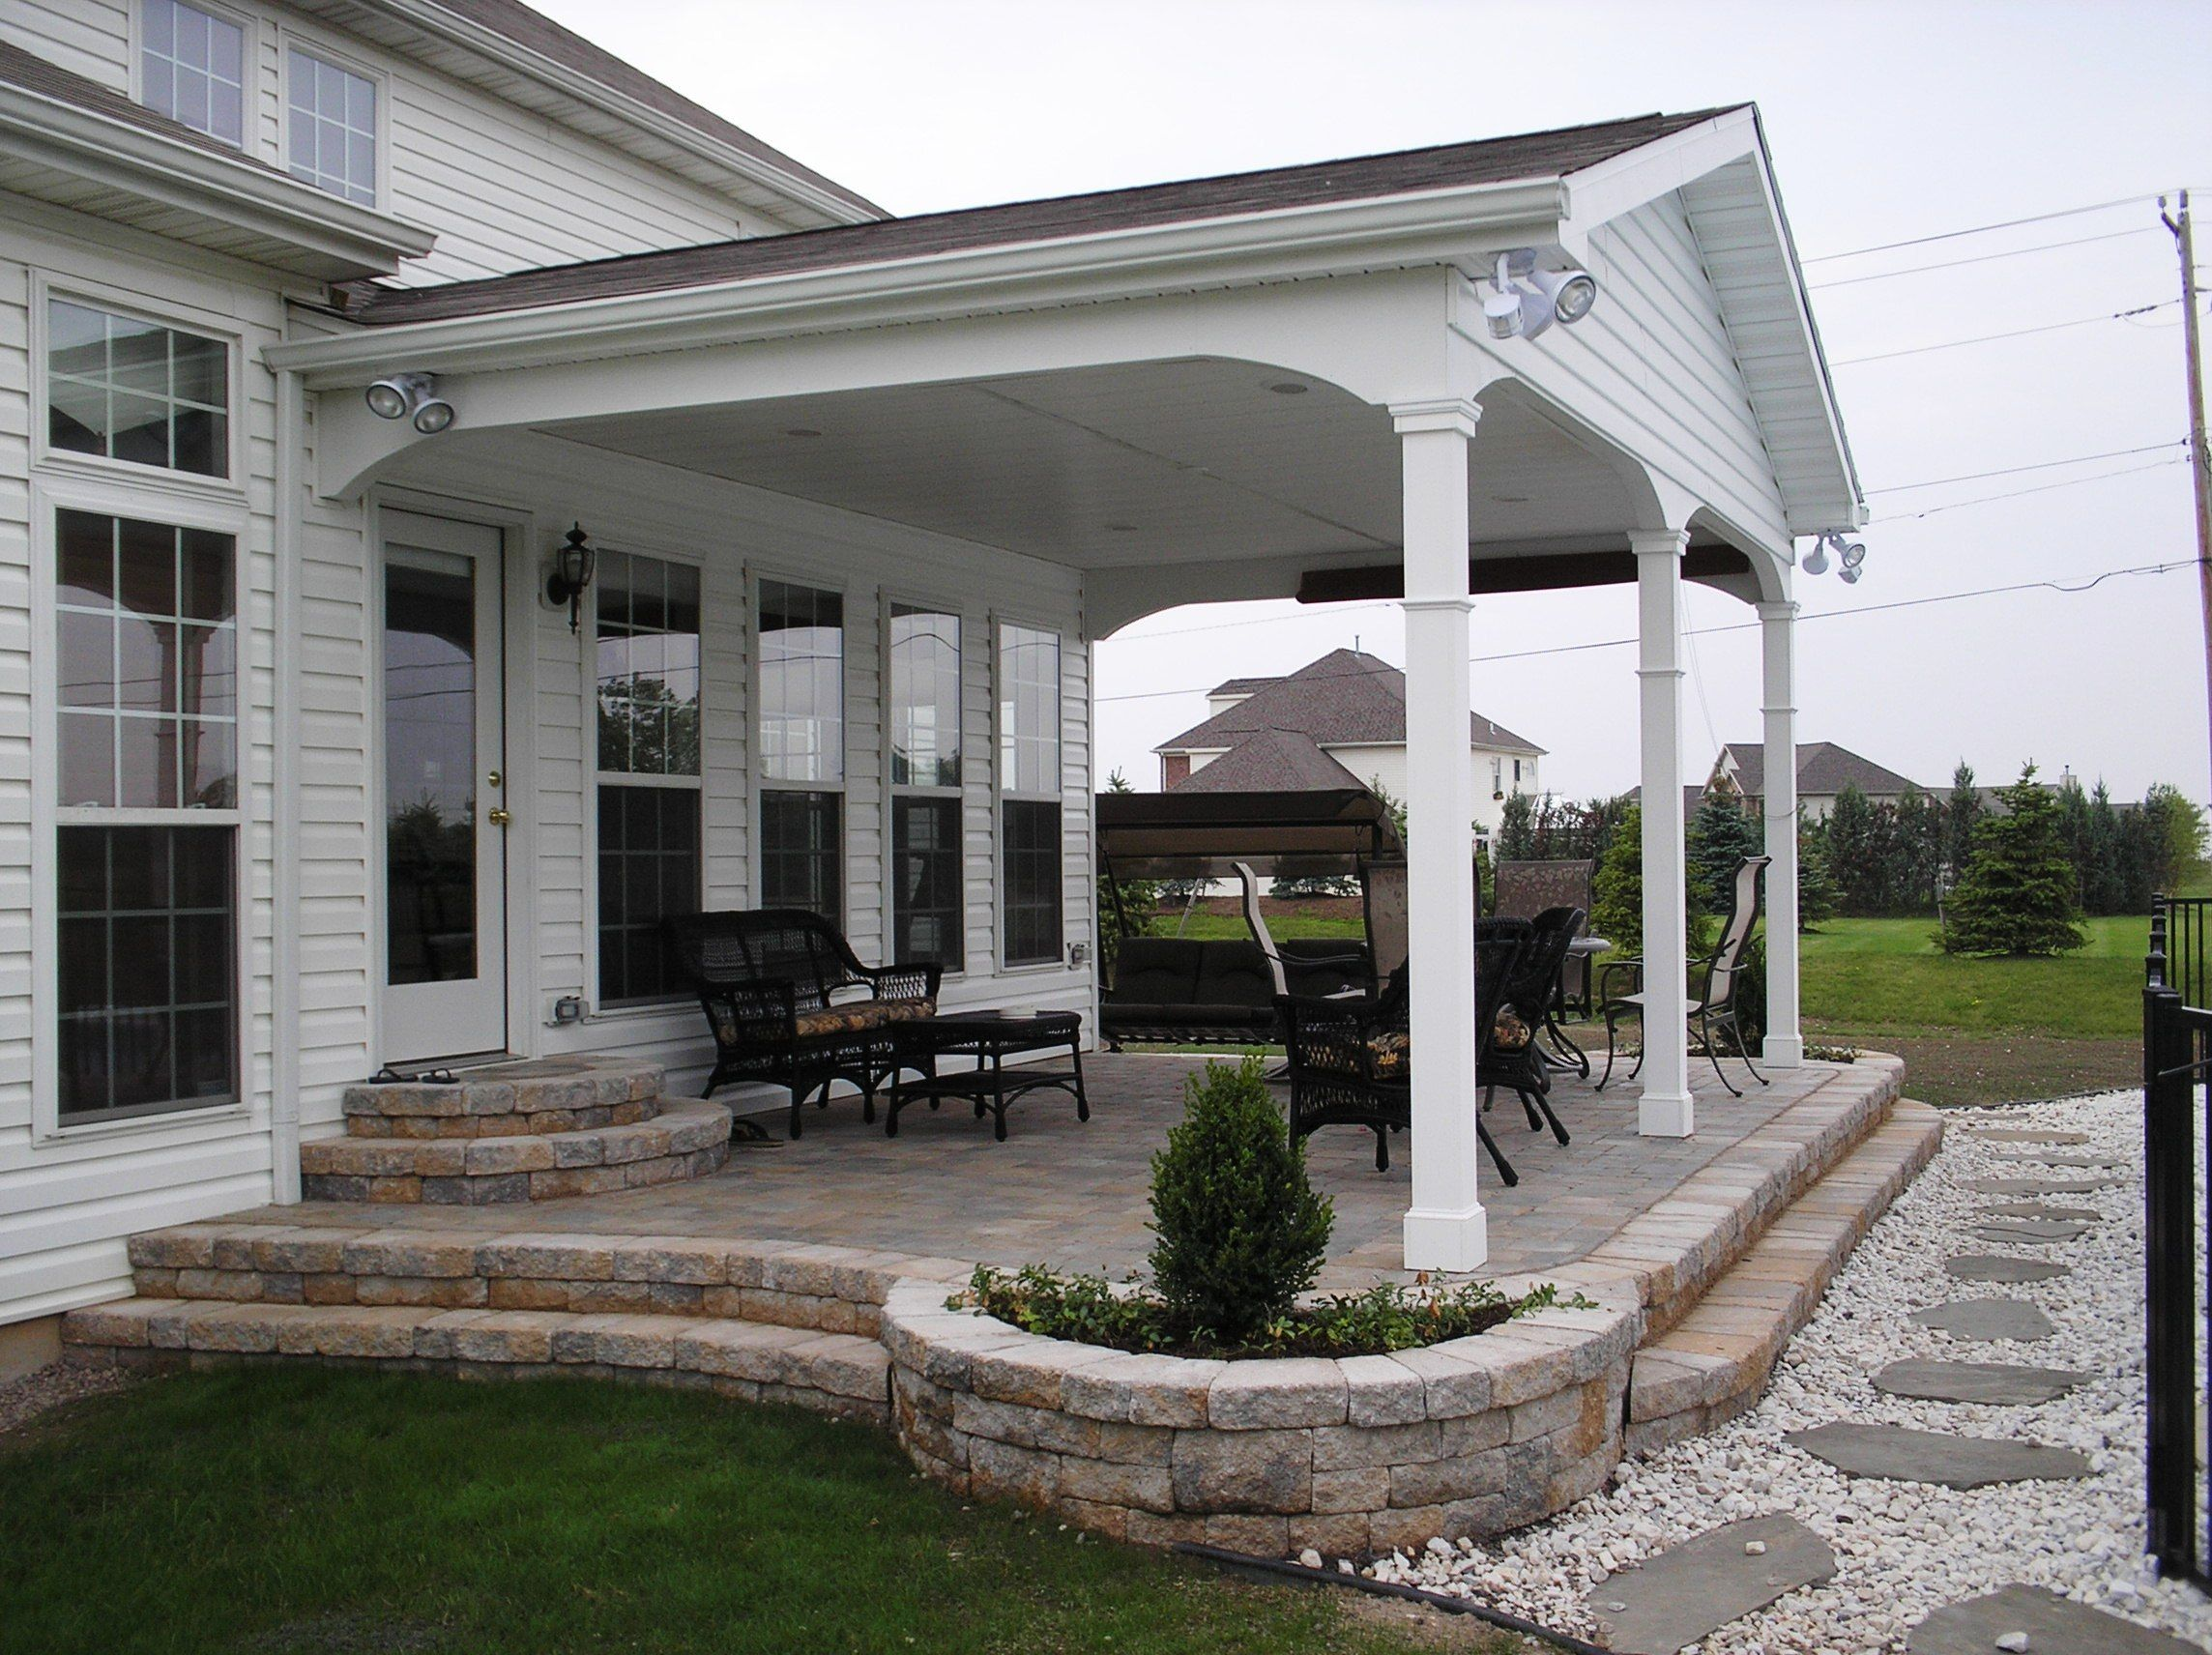 Beau Front Porches And Back Patios Are Our Favorite Spots To Relax In The Warmer  Months.